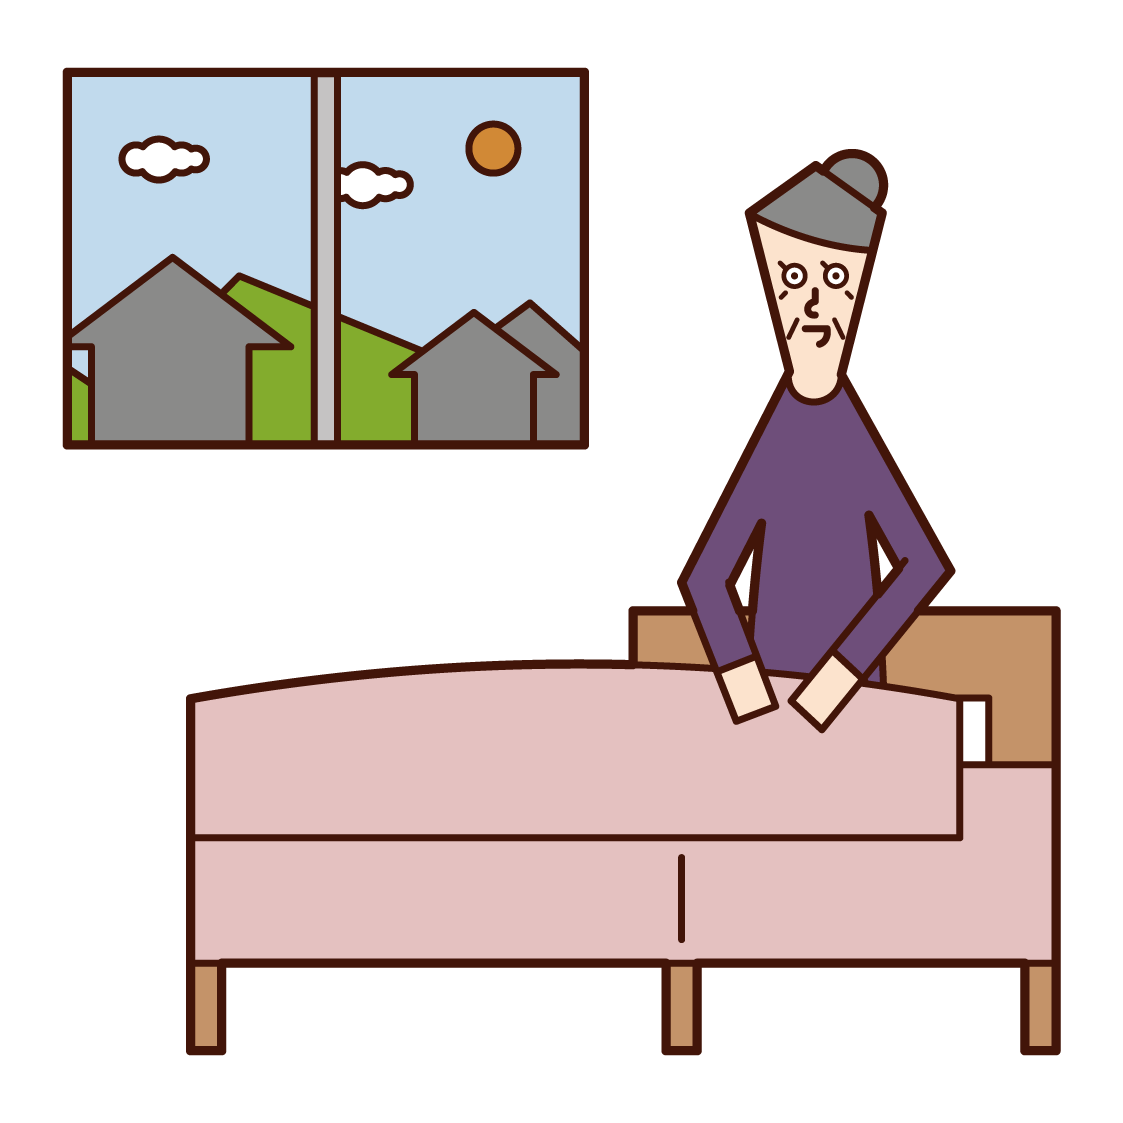 Illustration of a person (grandmother) who wakes up